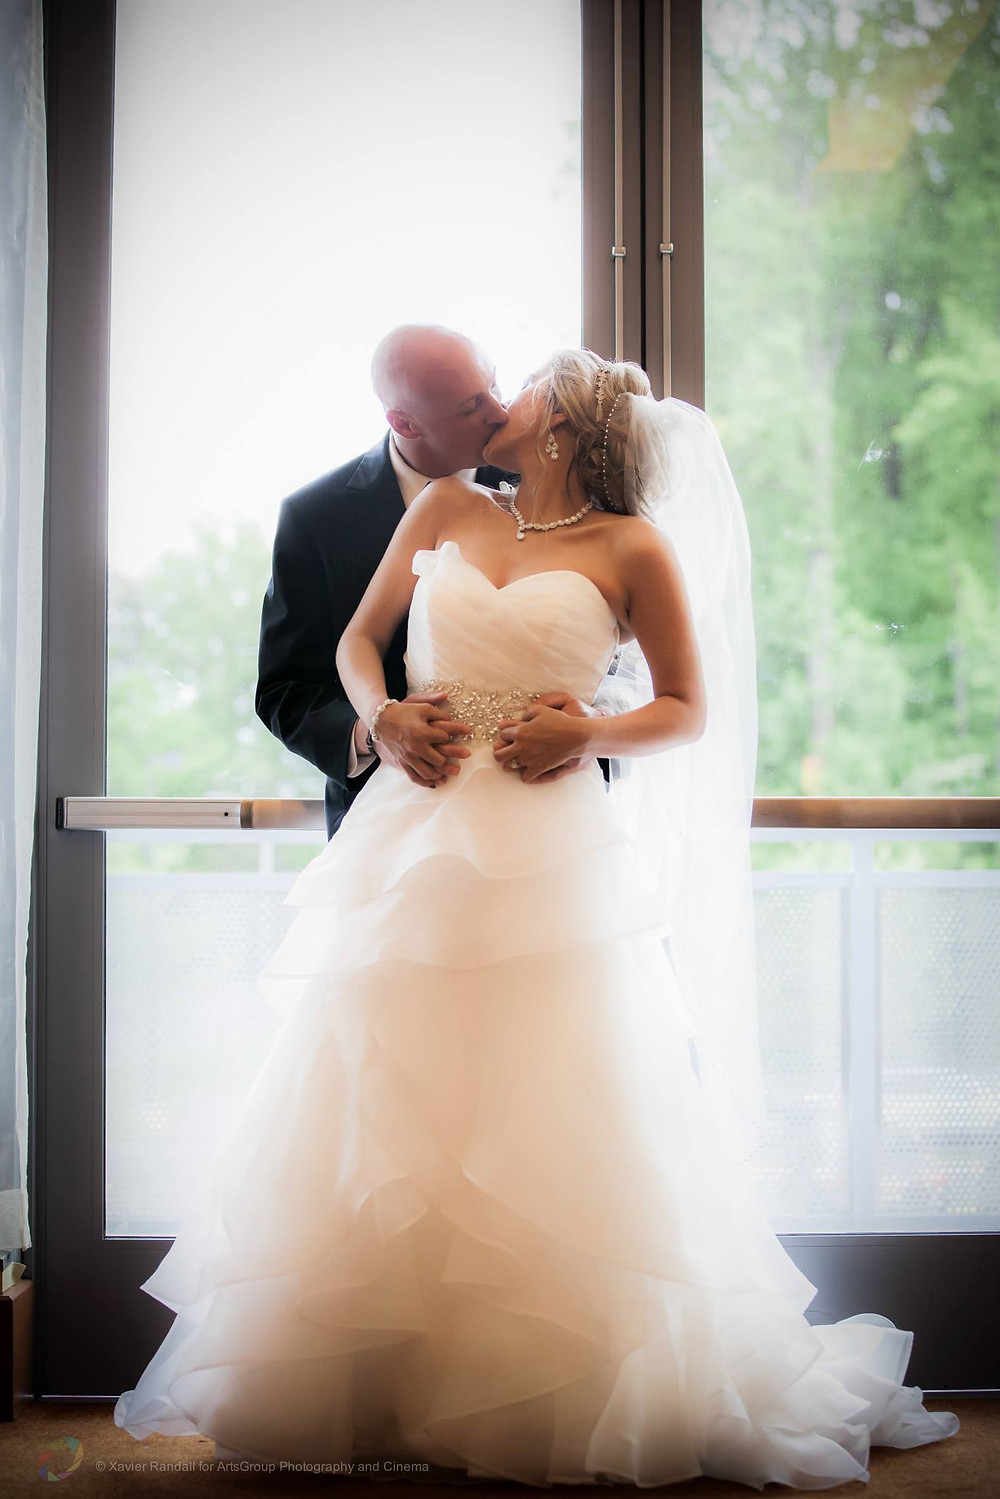 An image of a bride and groom kissing on their wedding day.